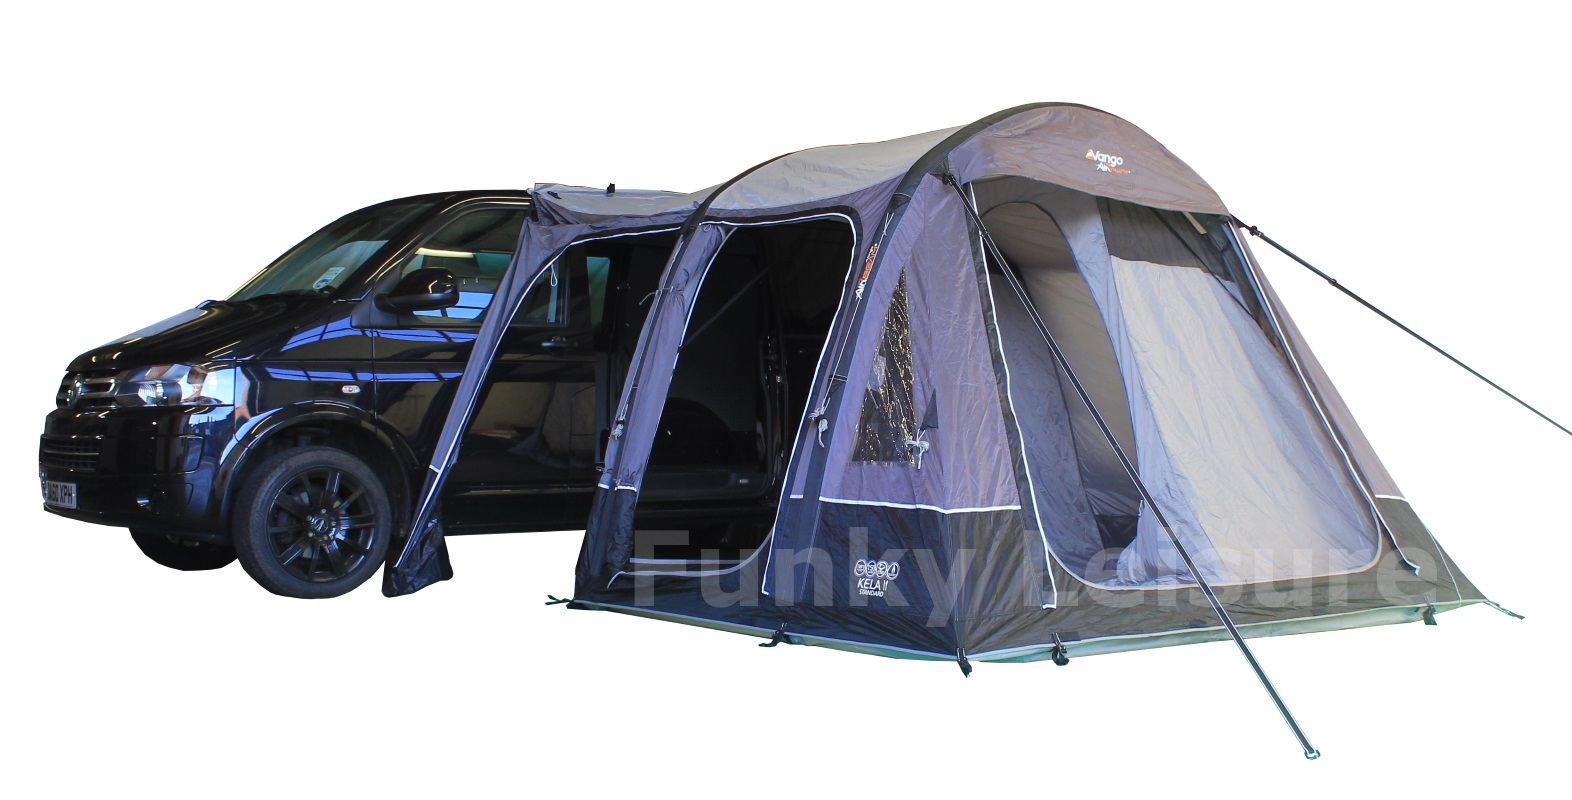 2015 Vango Kela Ii Airbeam Awning Review Funky Leisure